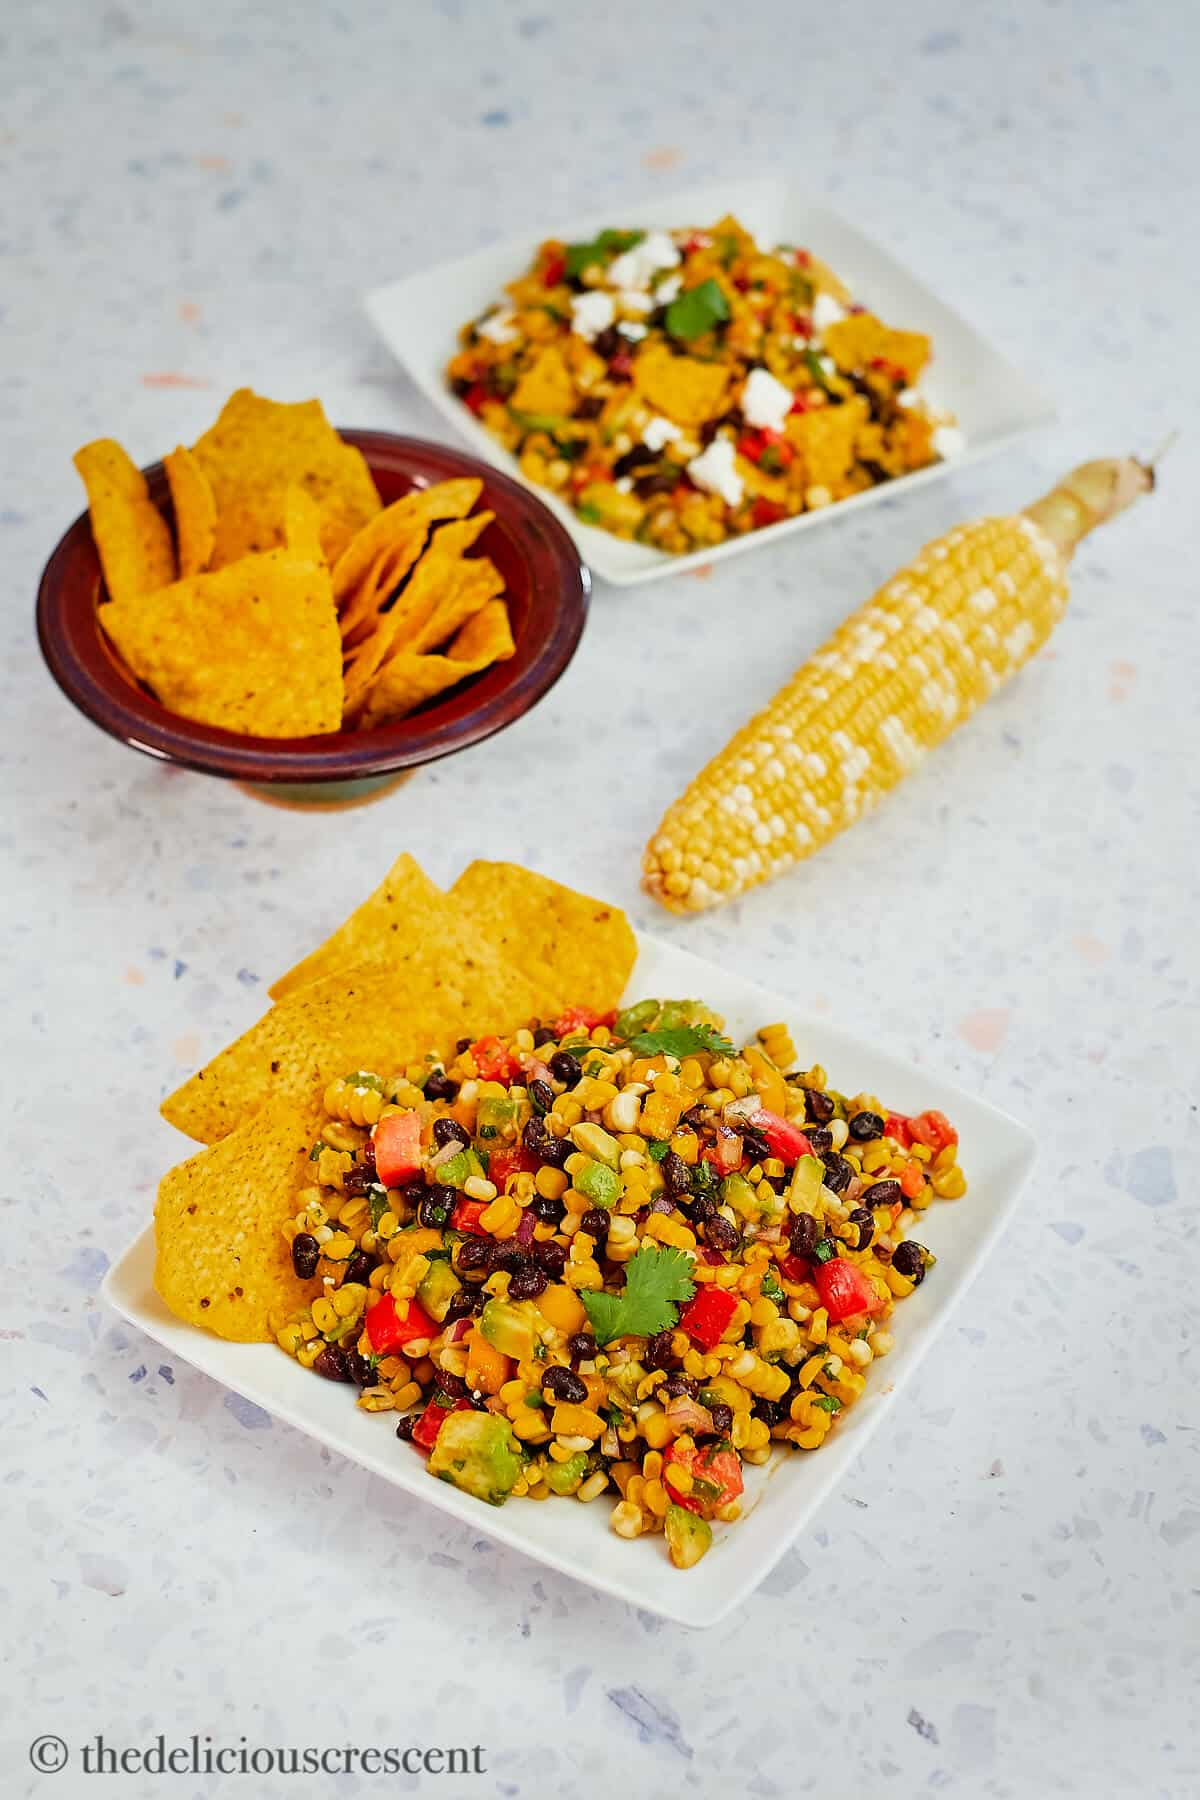 Overhead view of salad with corn chips on the side.